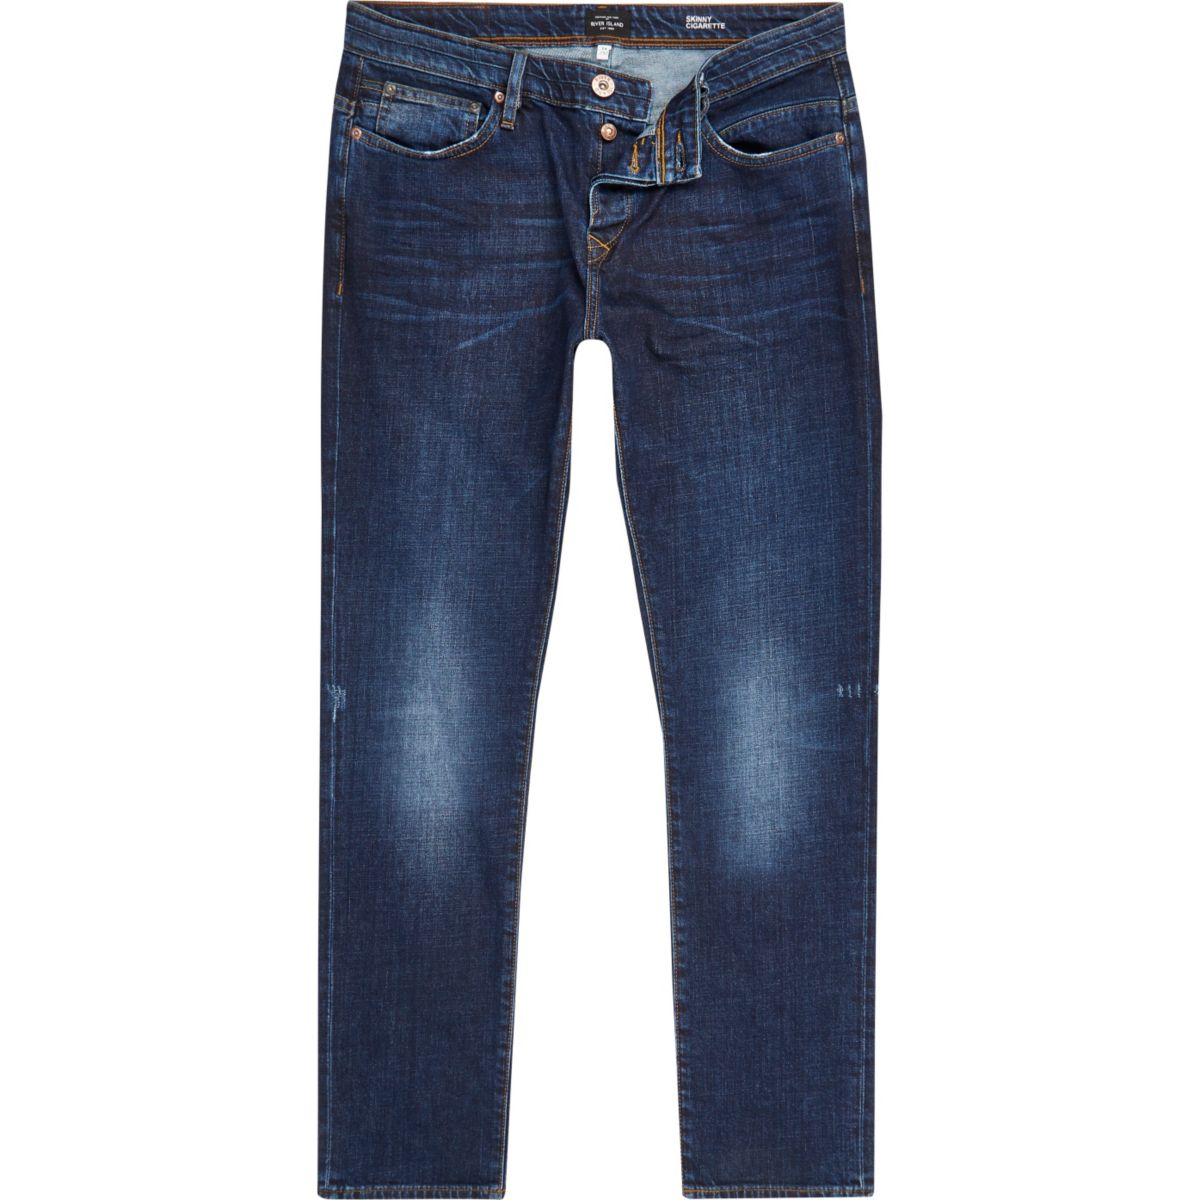 Dark blue wash Ronnie skinny cigarette jeans